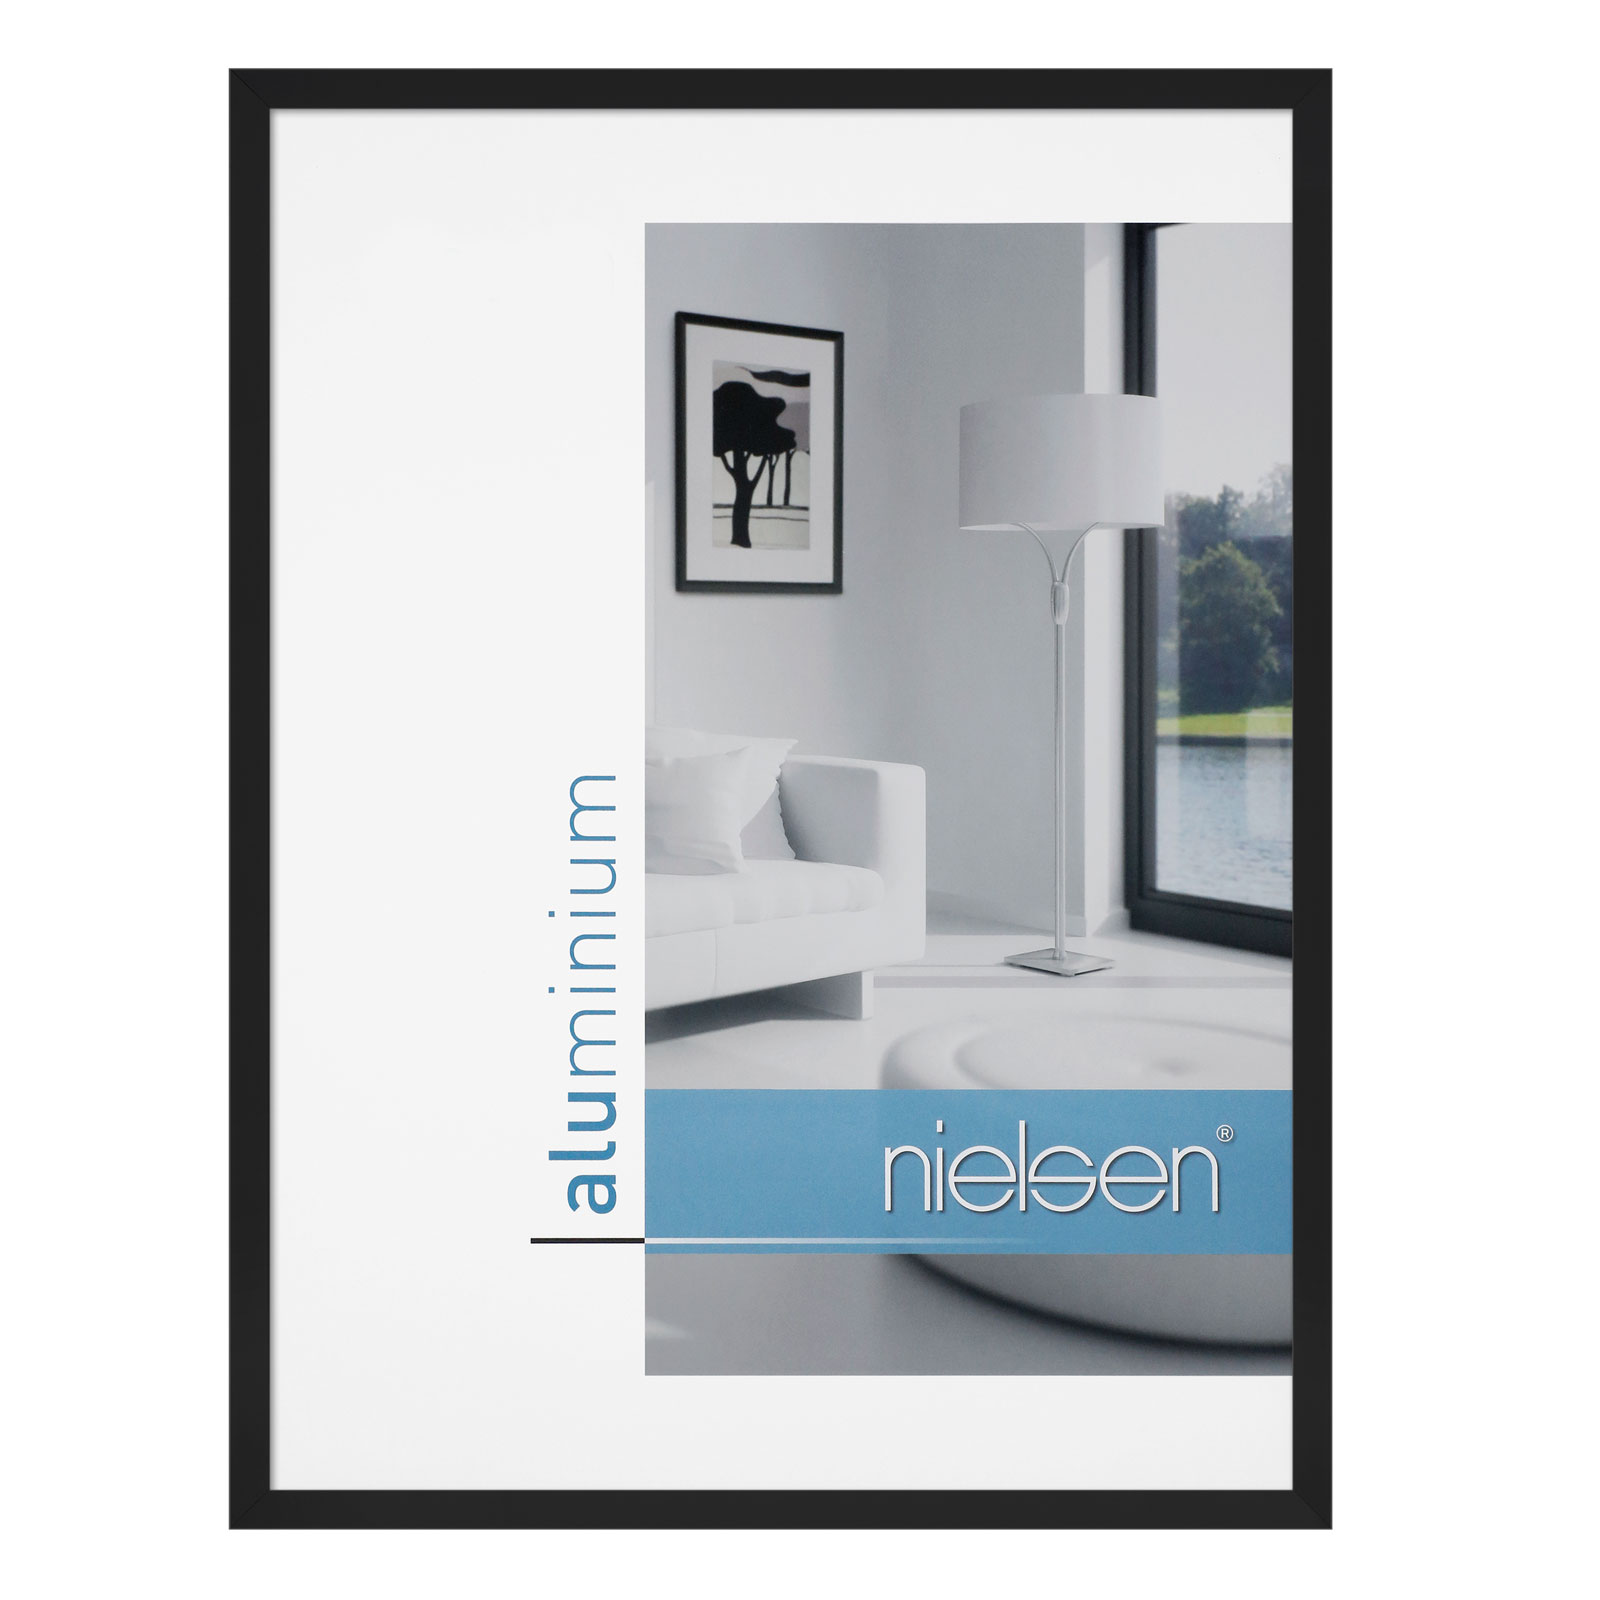 nielsen bilderrahmen c2 aluminium nielsen bilderrahmen bilderrahmen leha technik. Black Bedroom Furniture Sets. Home Design Ideas